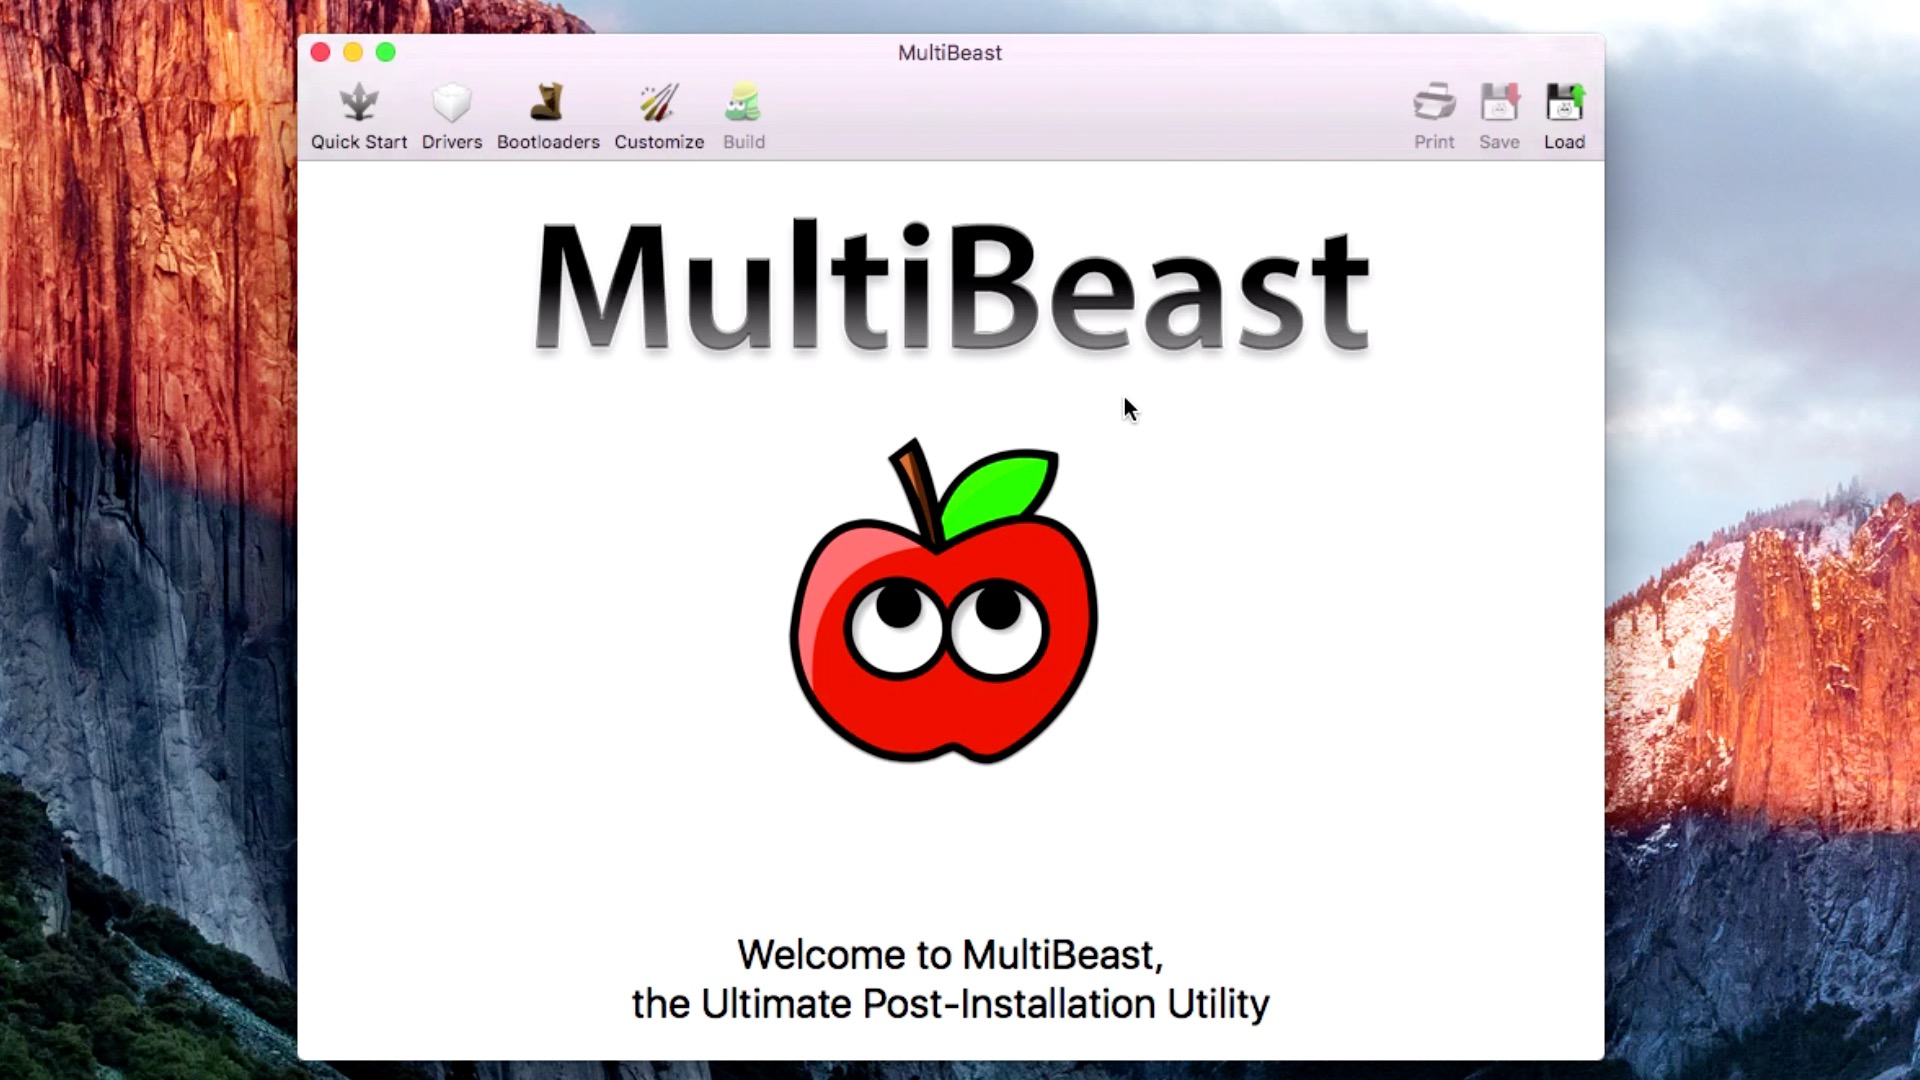 Configure MultiBeast